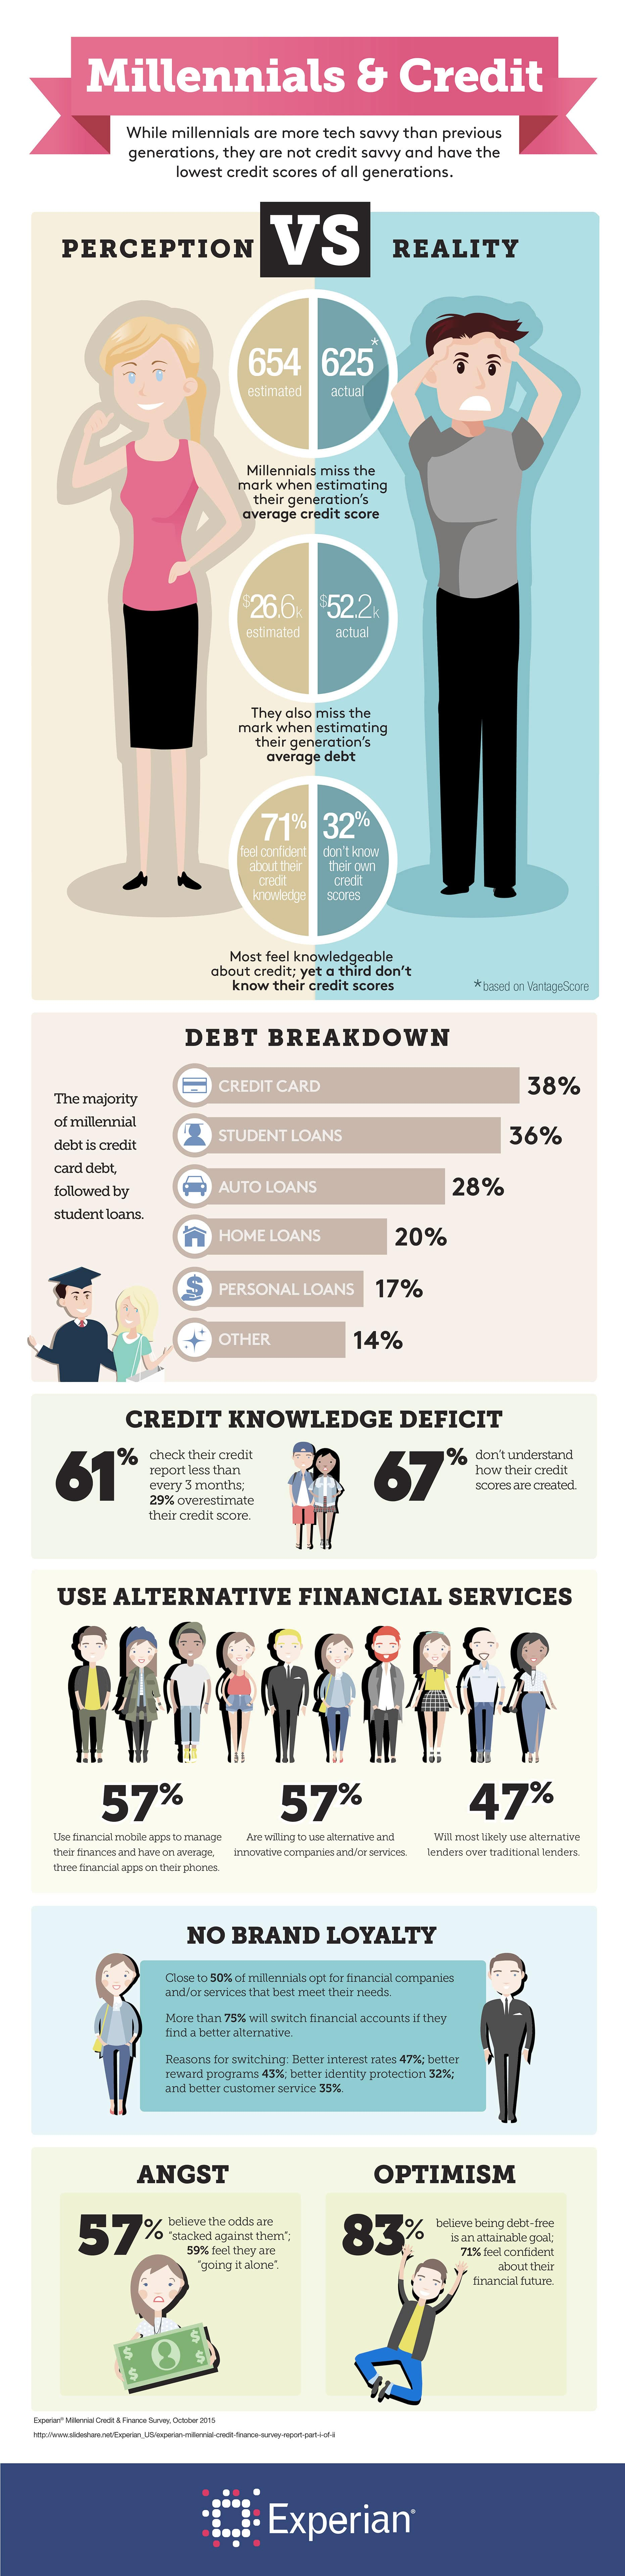 Millennials and credit survey results experian review your free experian credit report today ccuart Image collections